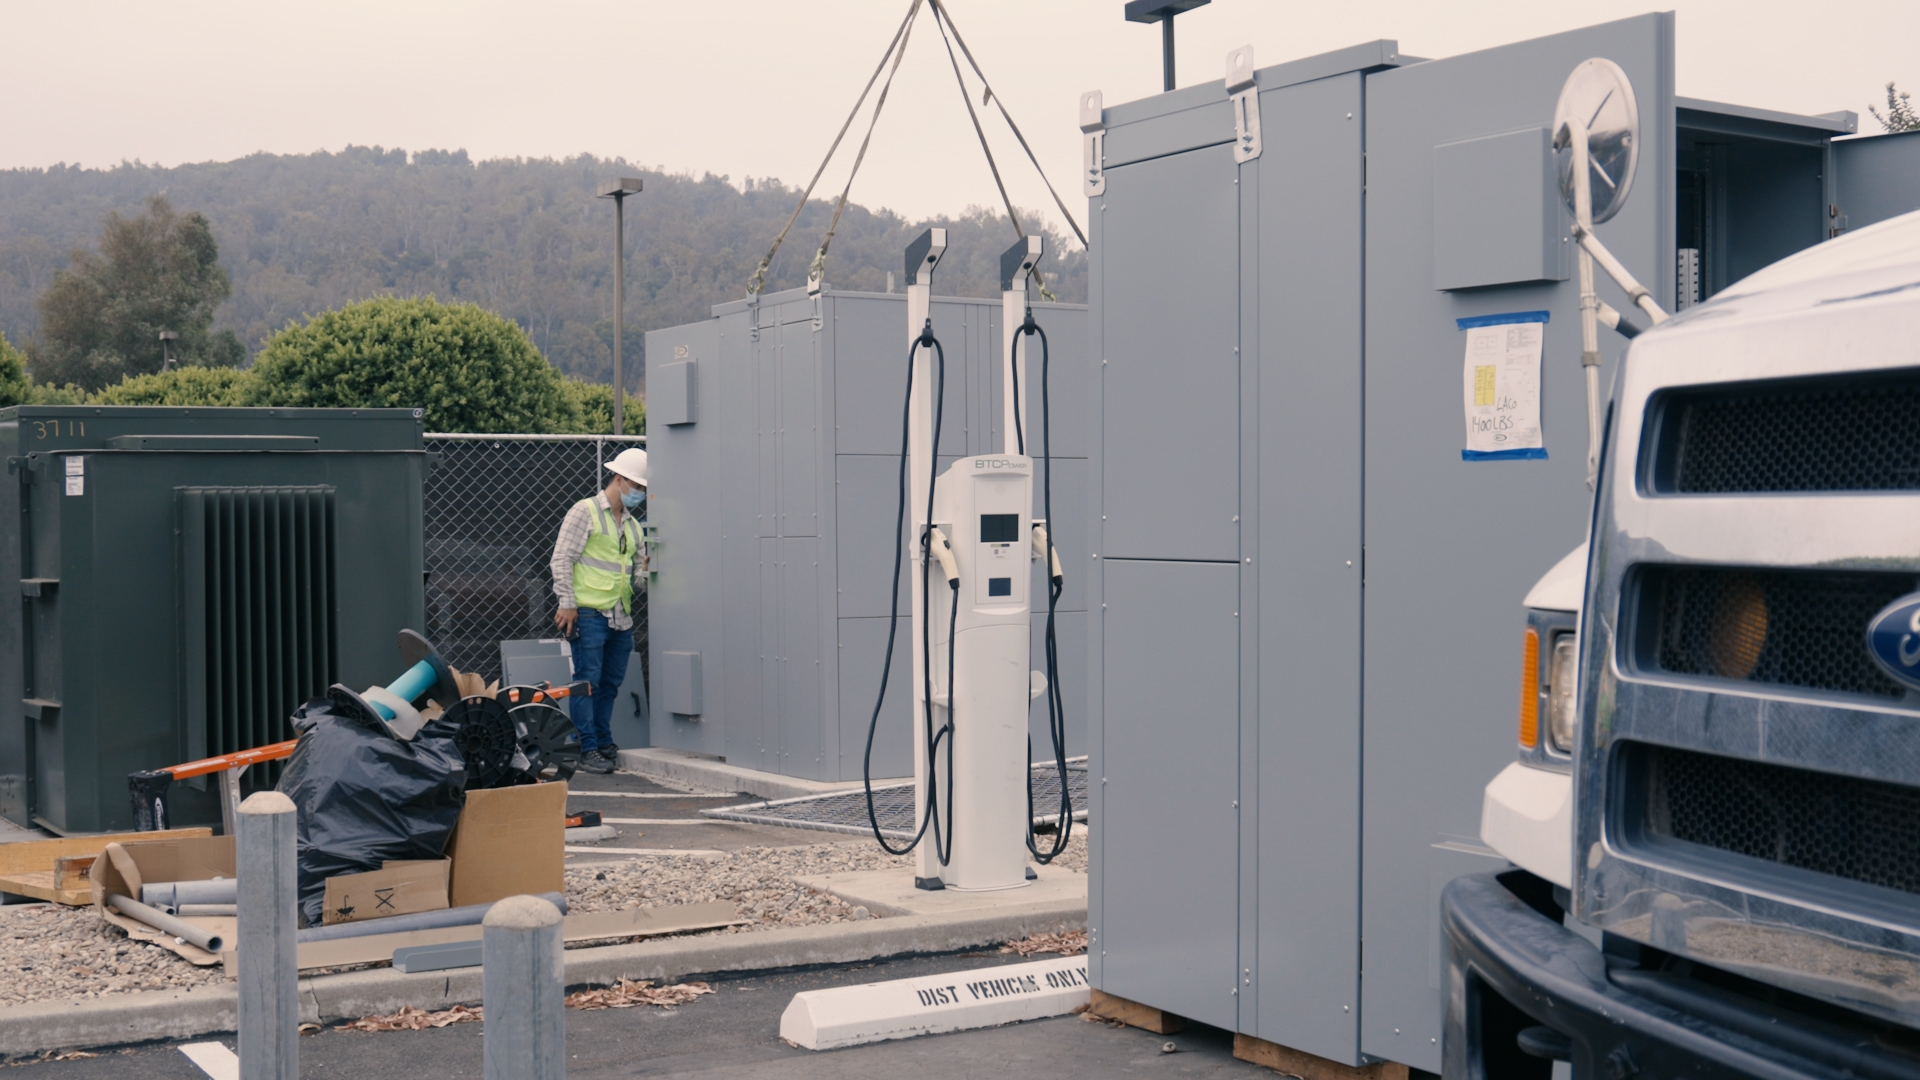 SCE's Charge Ready Program helped LACSD install electrical infrastructure for 44 charge ports to support the EVs in its fleet, and provided rebates for charging stations.